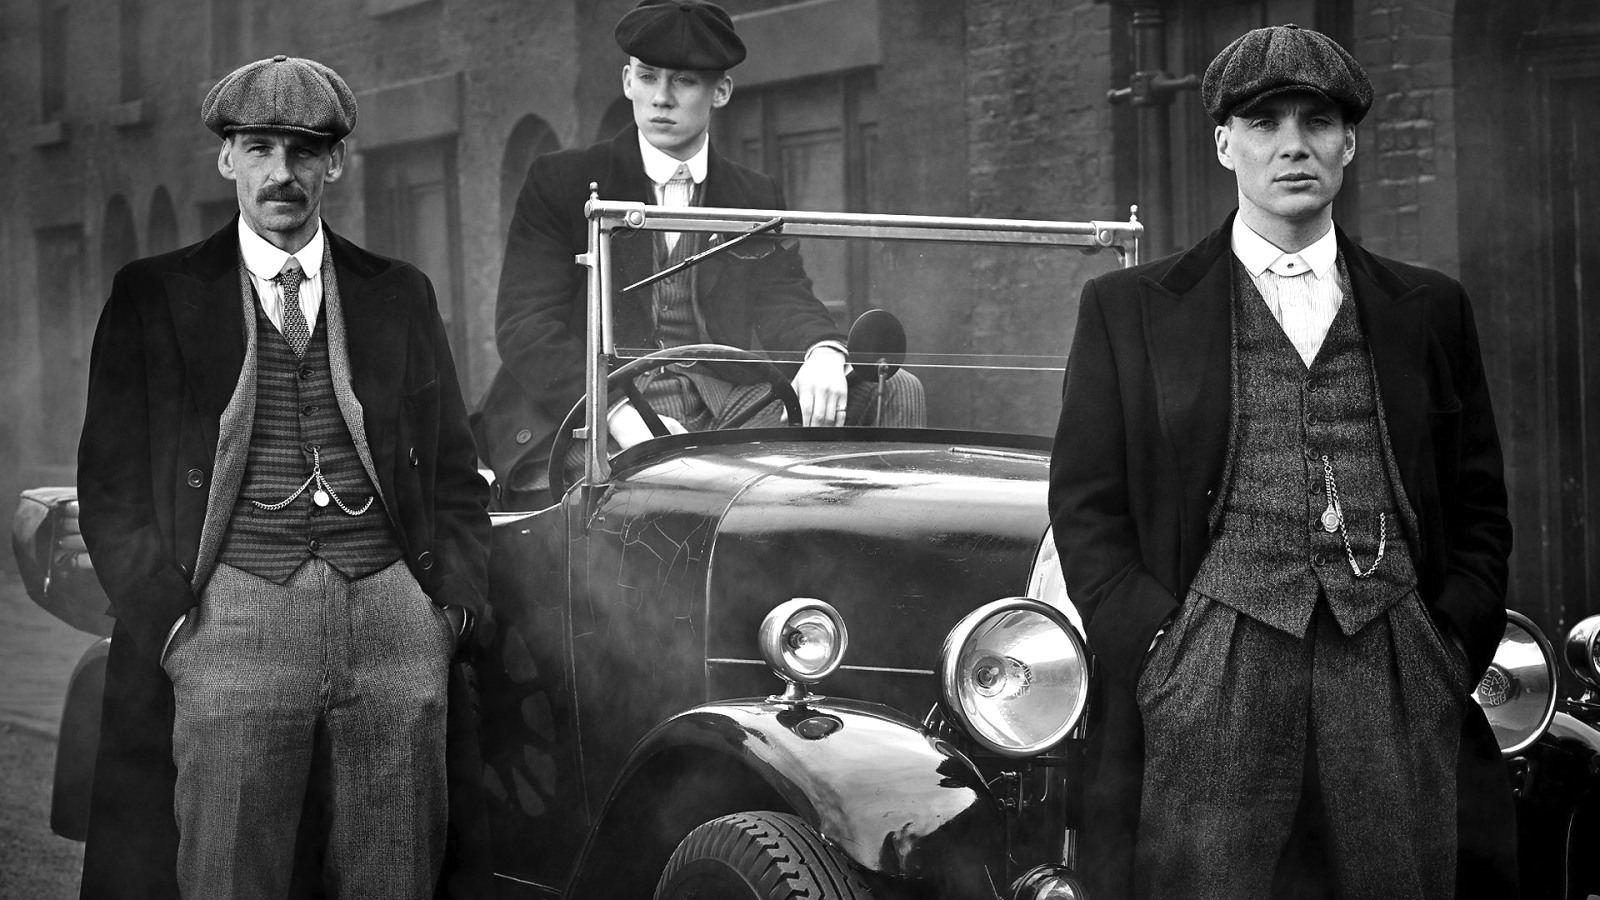 All three Peaky Blinders posing by their car